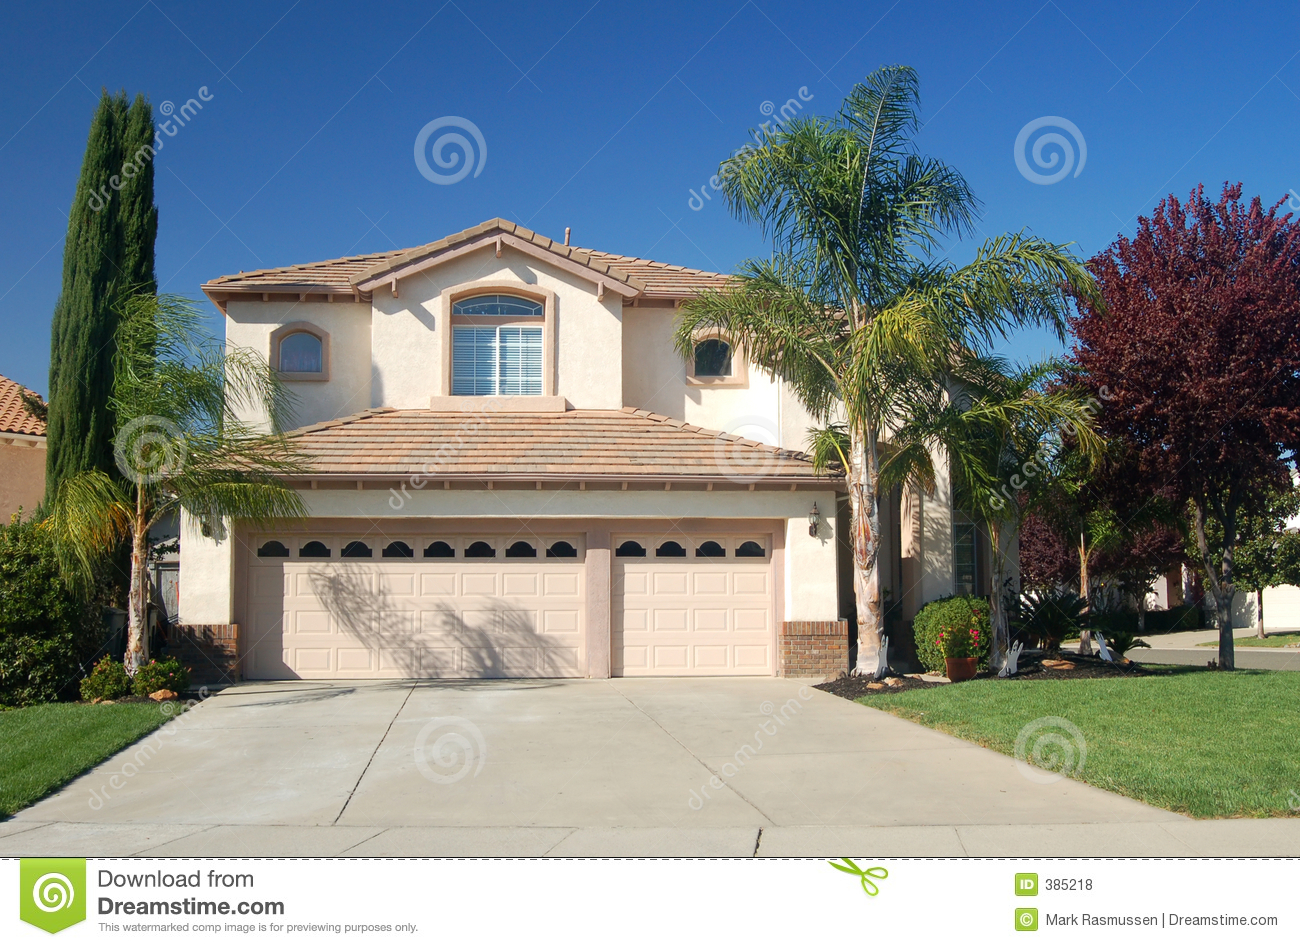 Nice house in california stock photo image of nice for Nice house picture